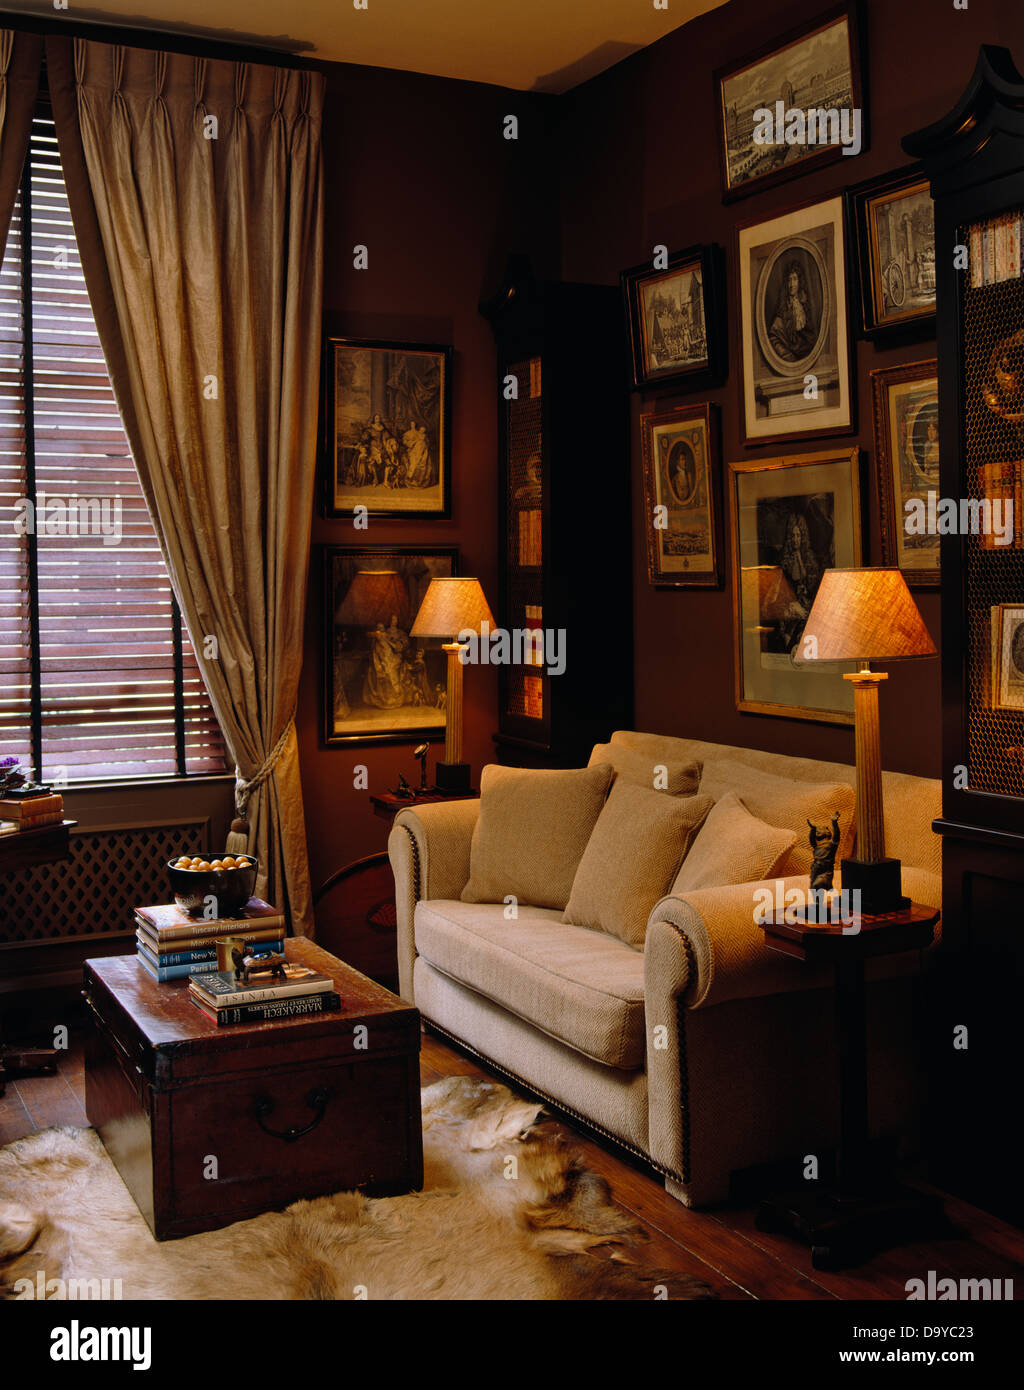 Lighted Lamps On Either Side Of Sofa Facing Wooden Chest Used As Coffee Table In Living Room With Beige Silk Drapes Window